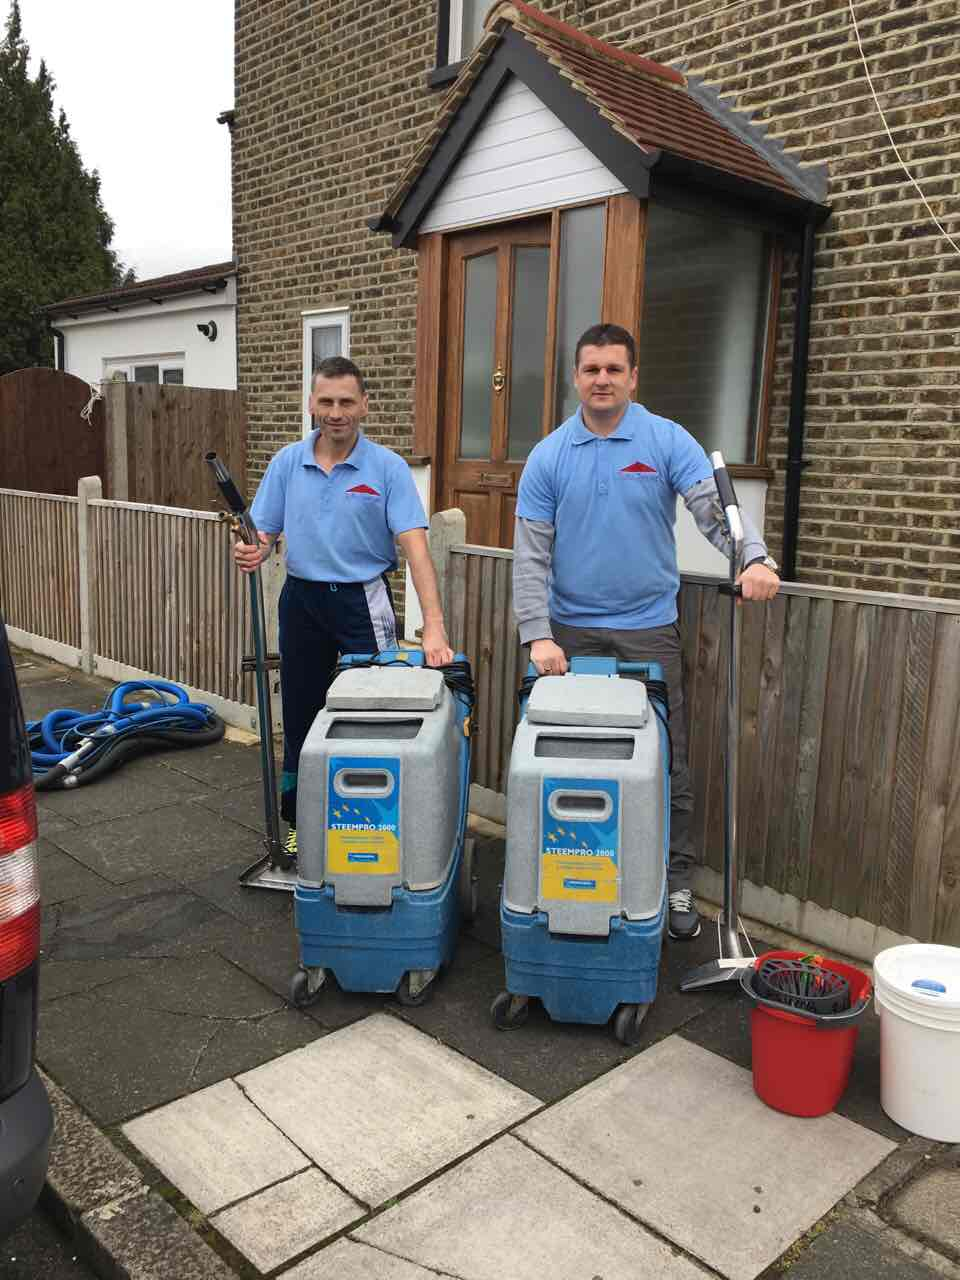 go for cleaning - carpet cleaners in london.jpg